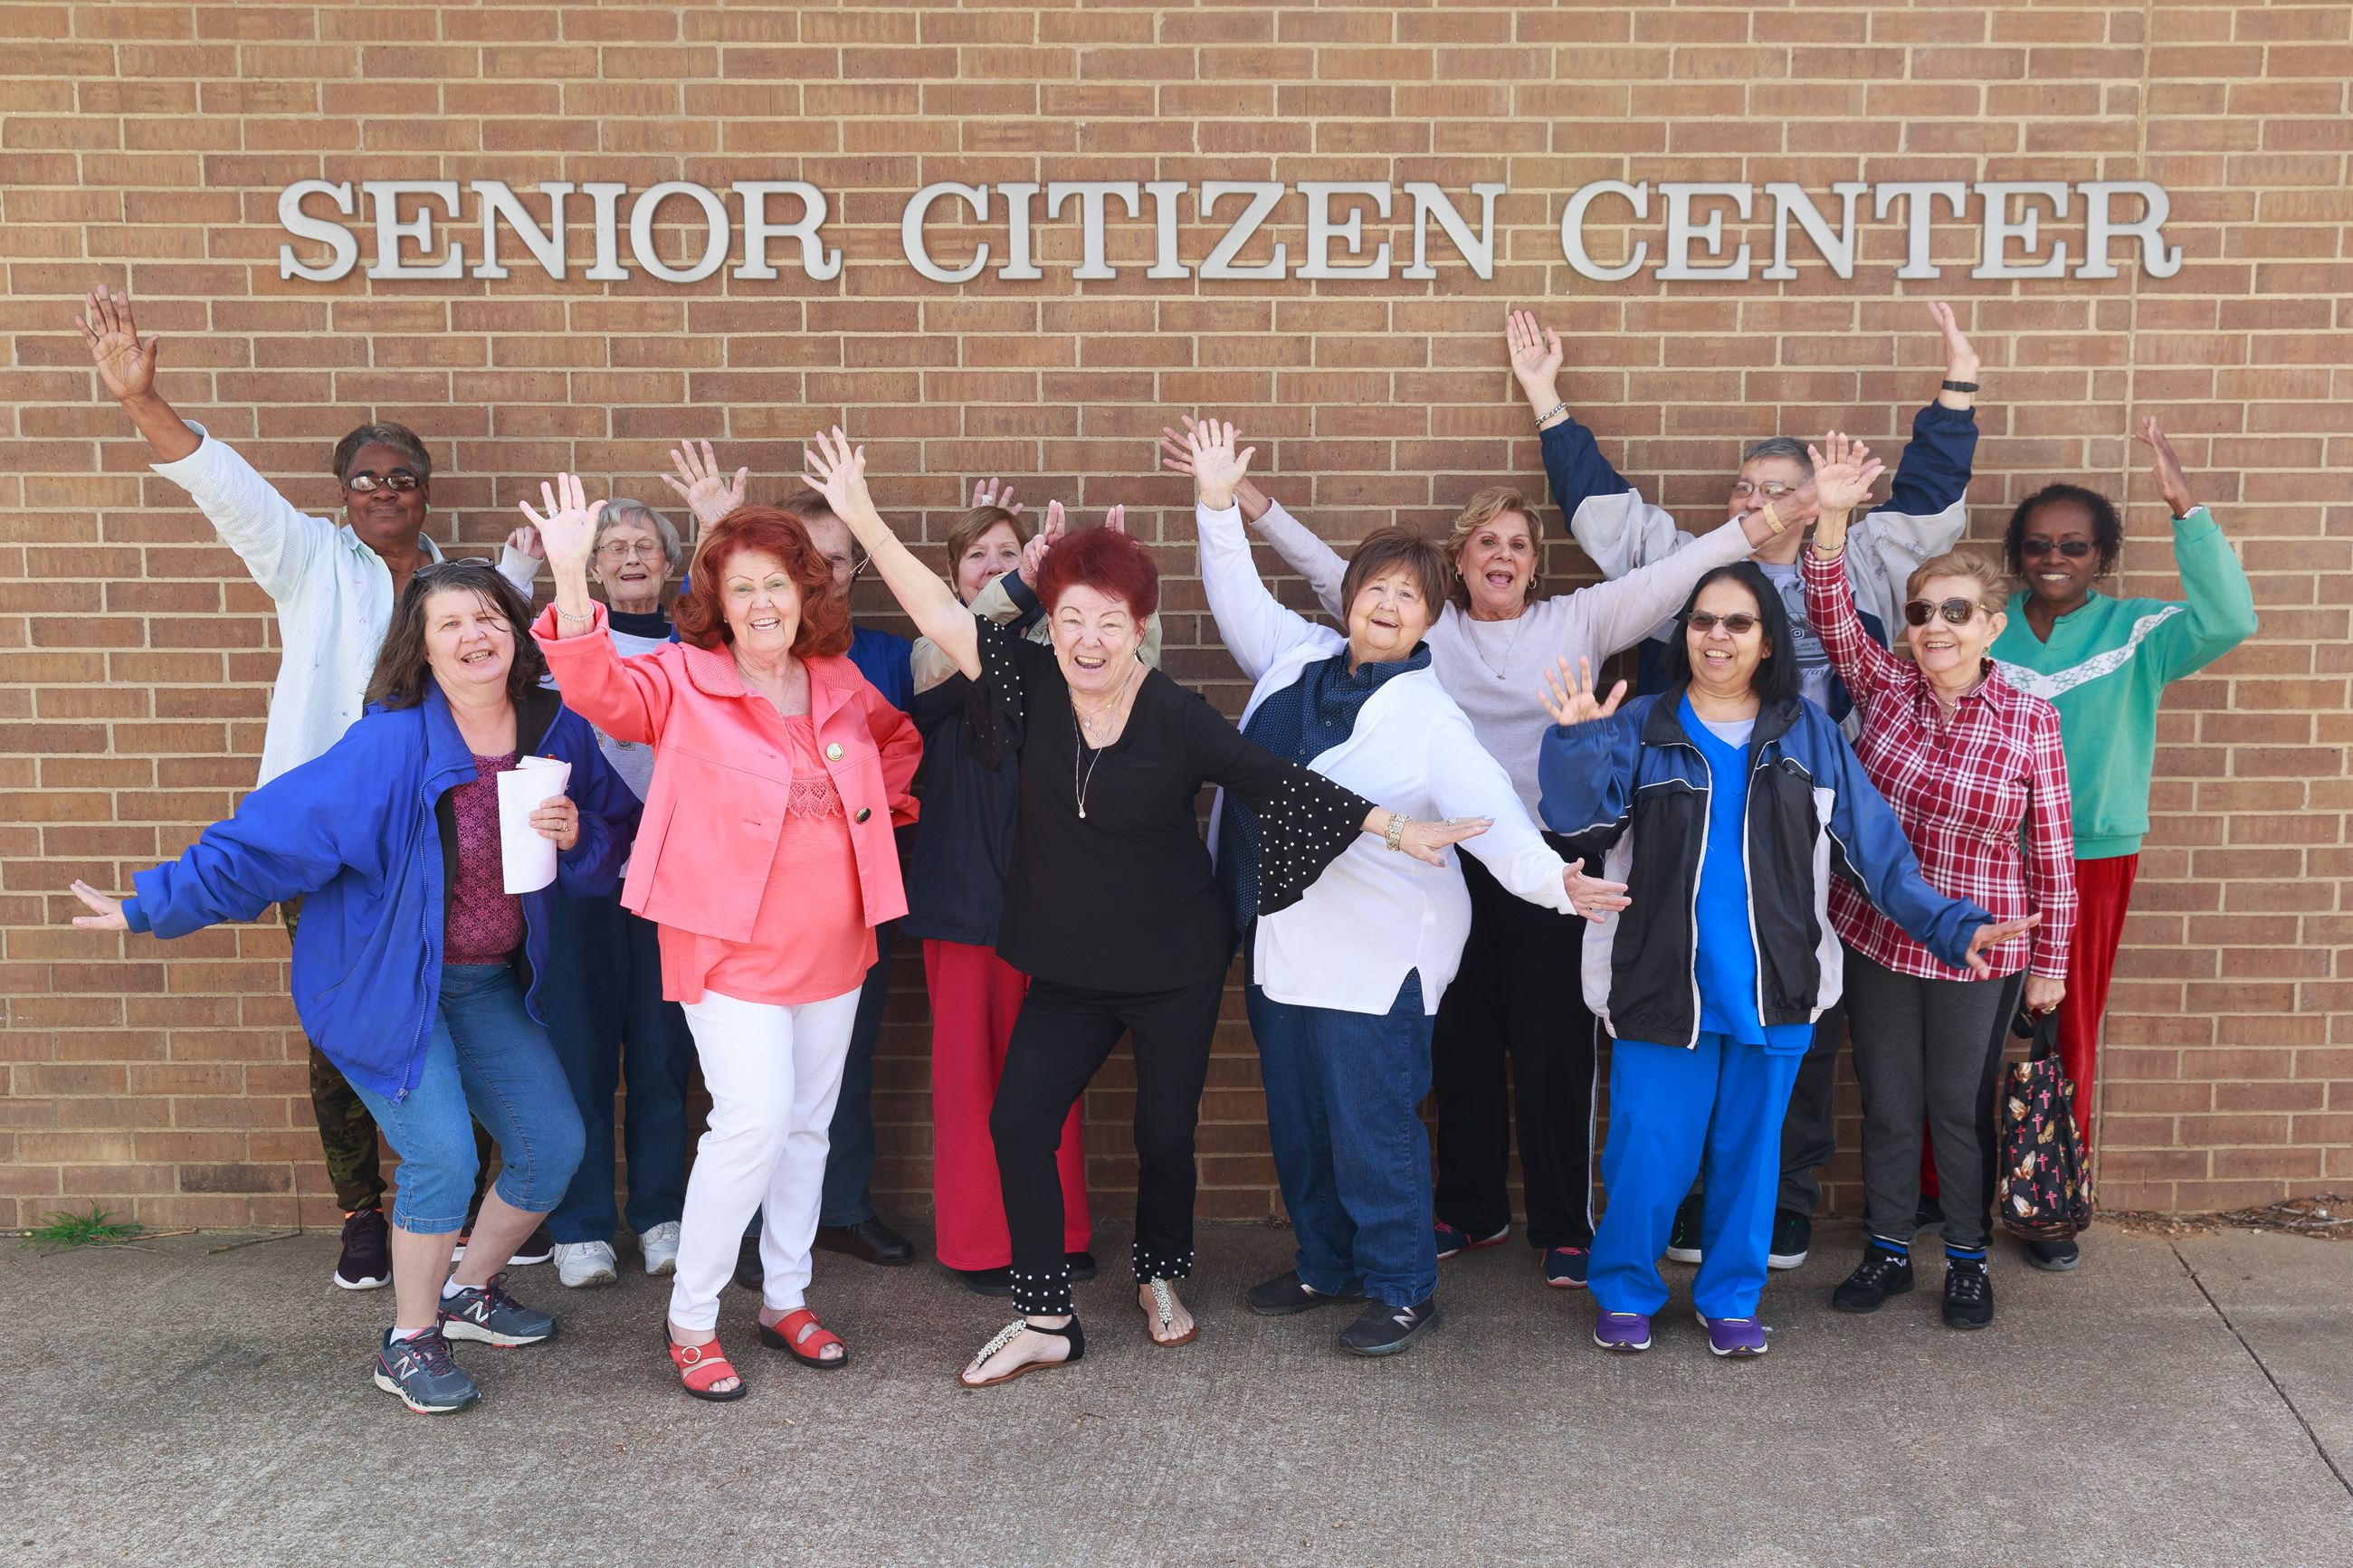 Kennedale Senior Center Members